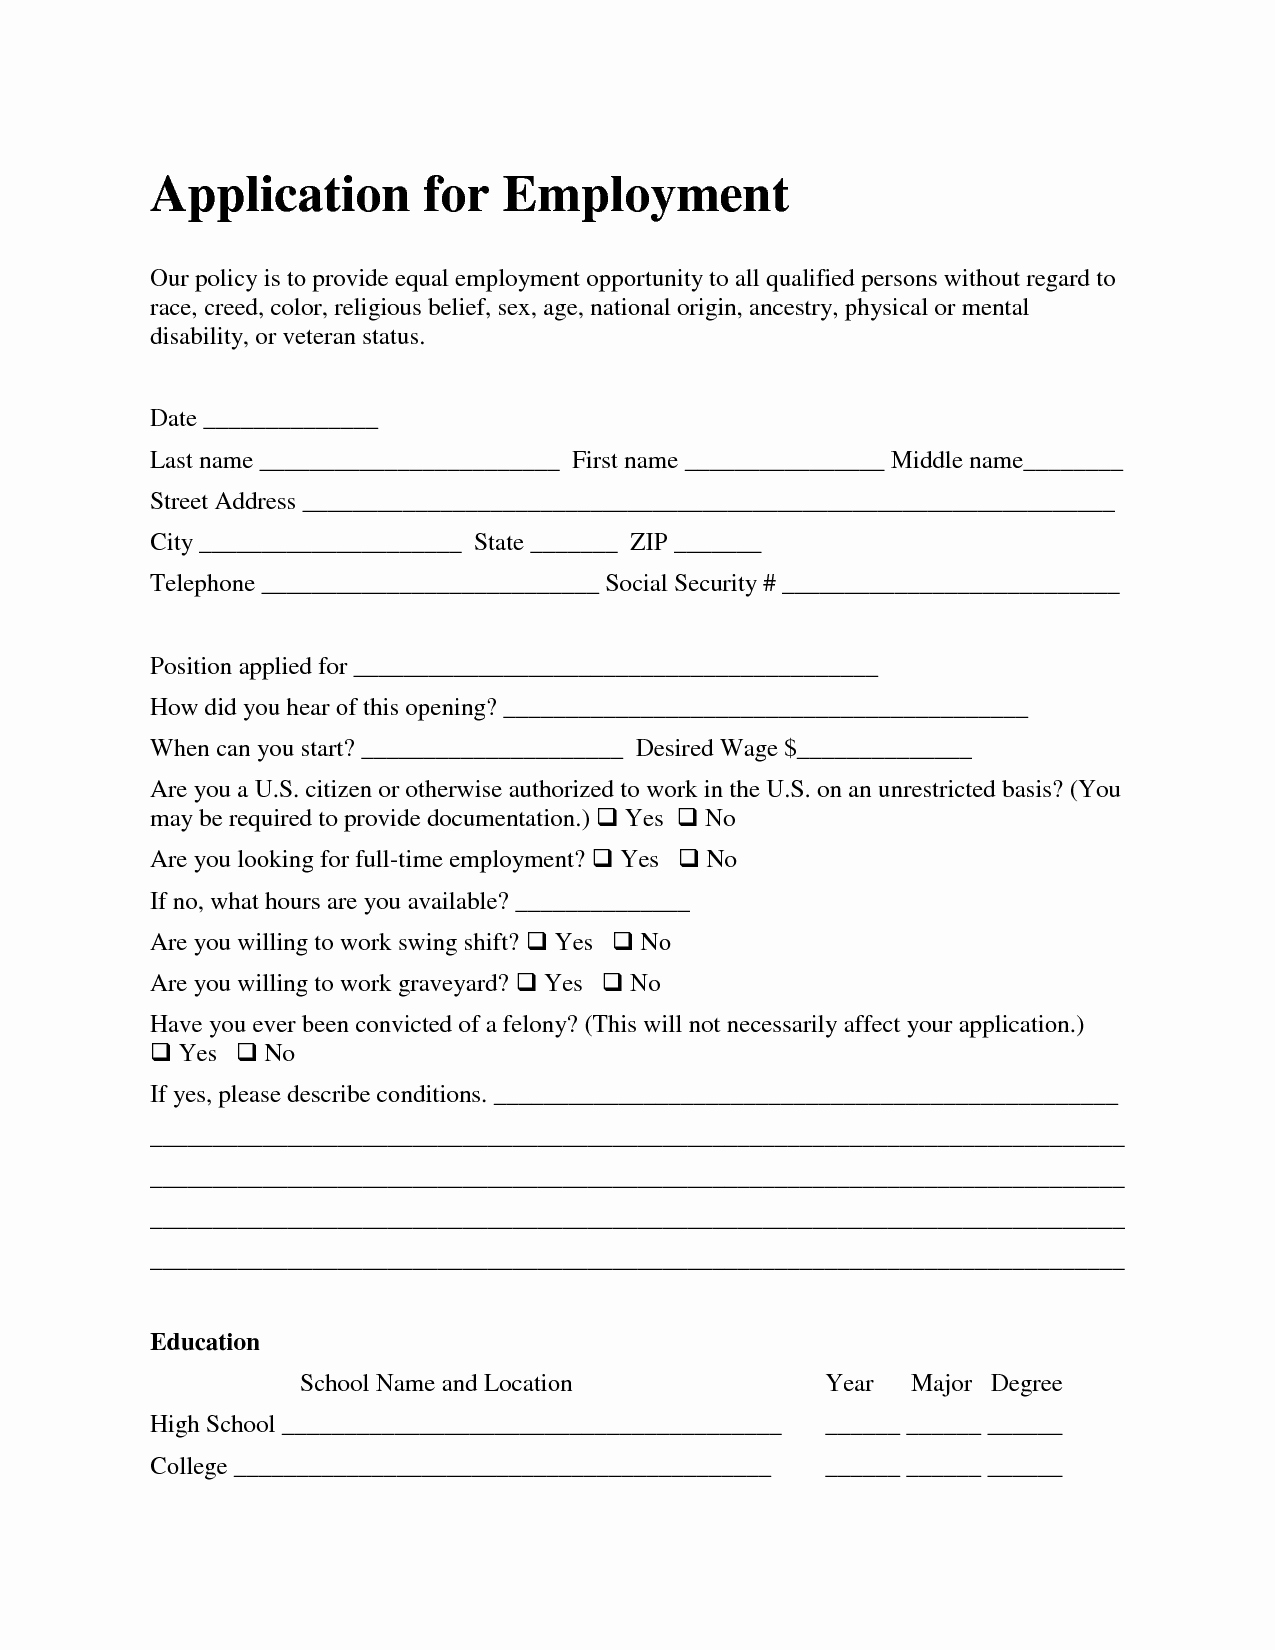 Job Application Template Microsoft Word New Template Job Application Azhrzltq